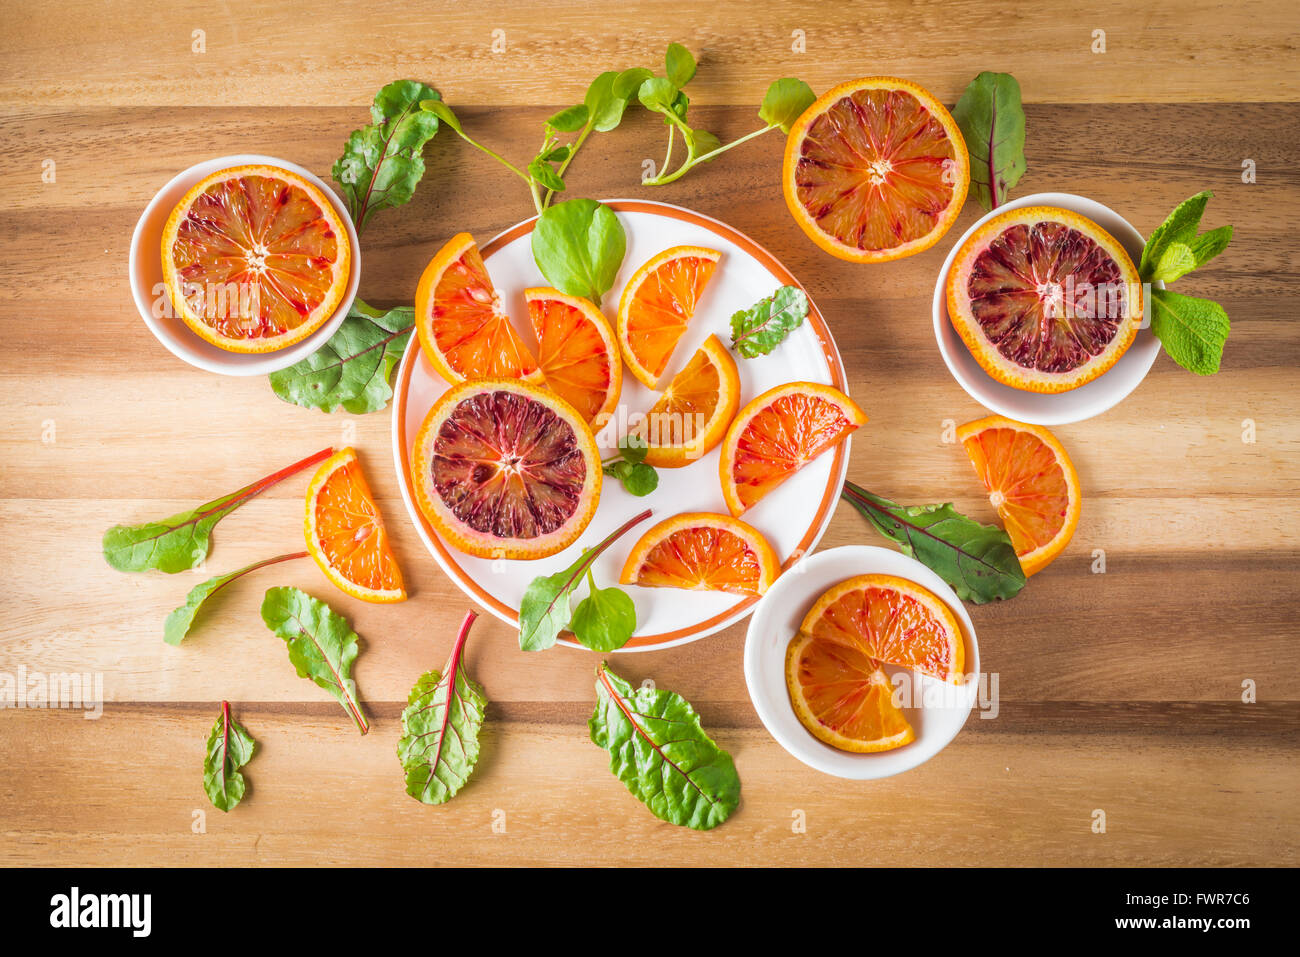 Blood oranges on white plates with green salad leaves on wood, top view - Stock Image